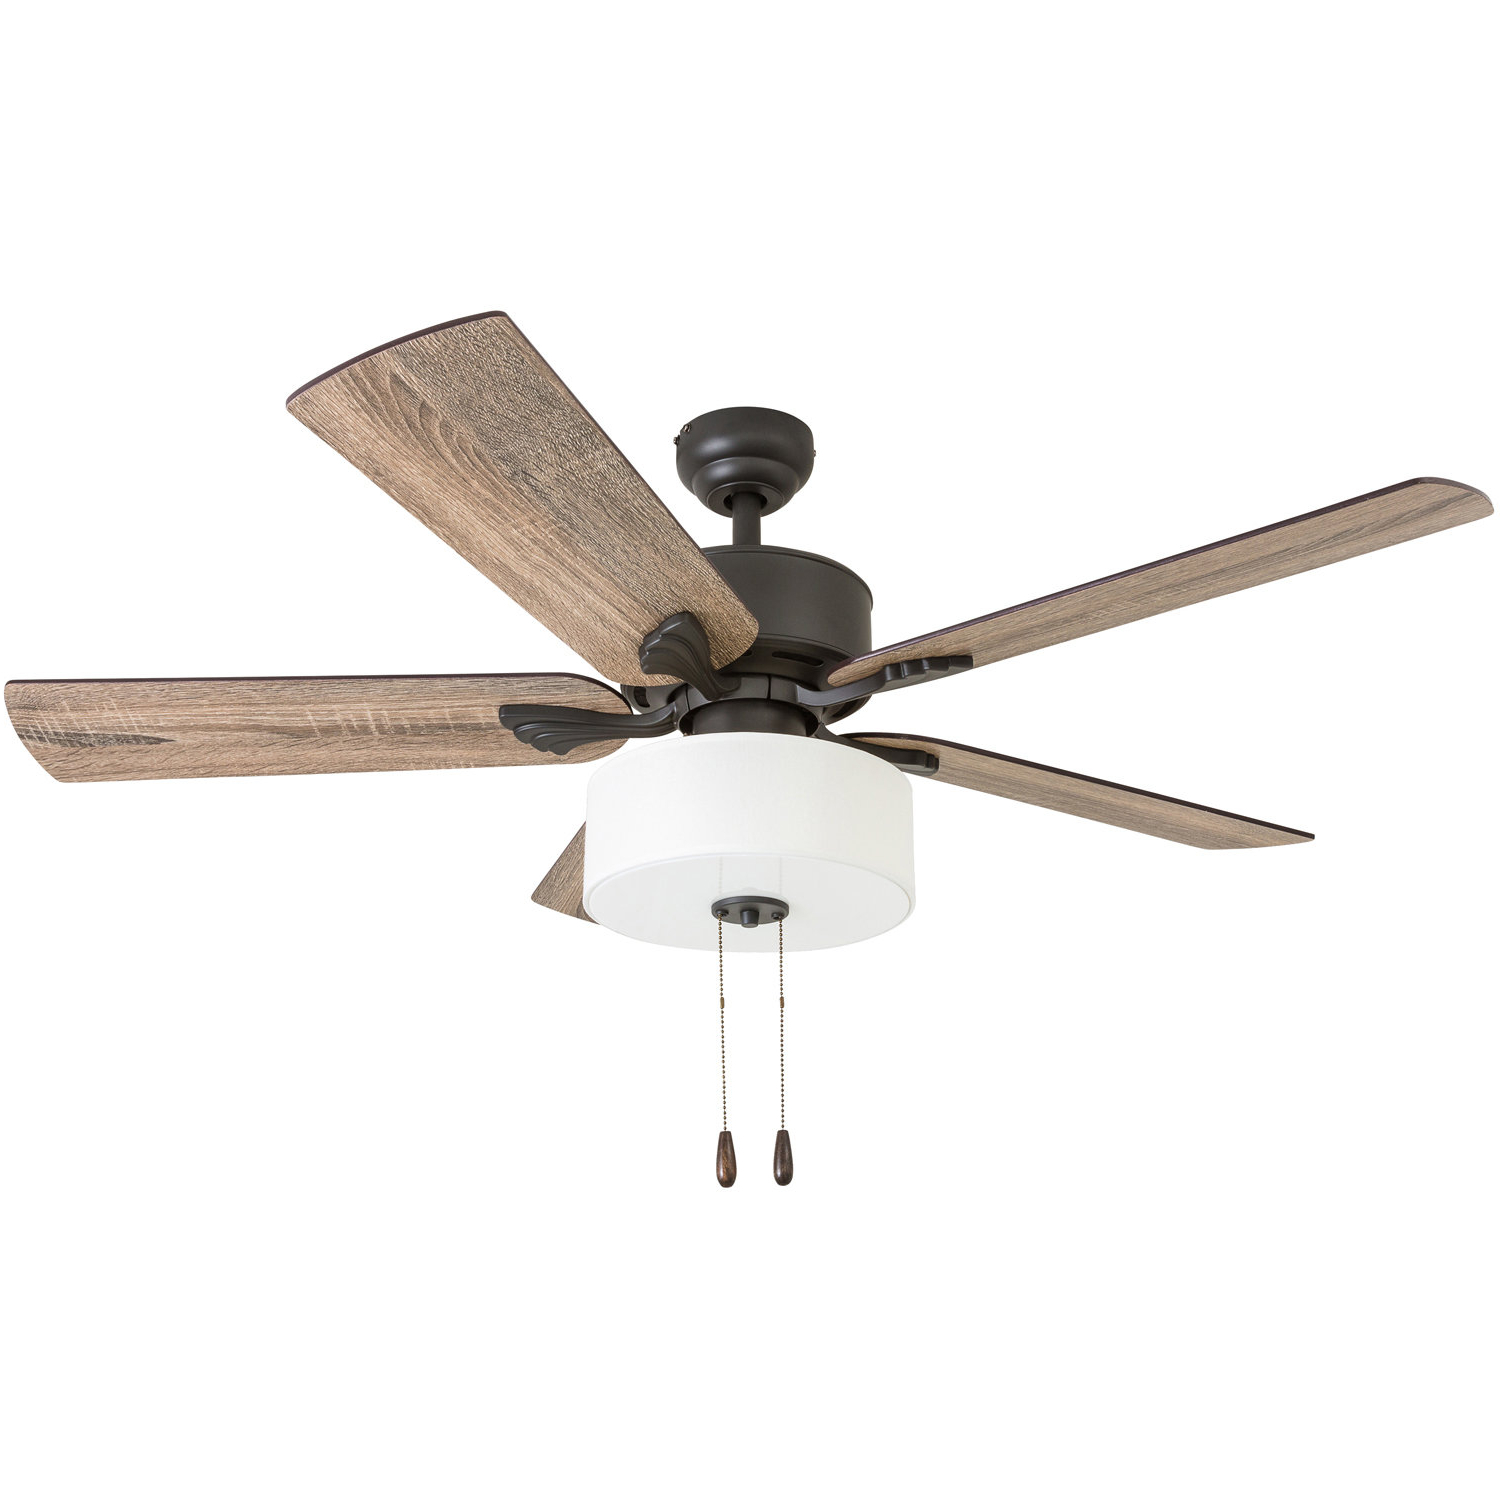 "Wilburton 5 Blade Ceiling Fans With Remote In Well Known 52"" Pannell 5 Blade Led Ceiling Fan & Reviews (View 16 of 20)"